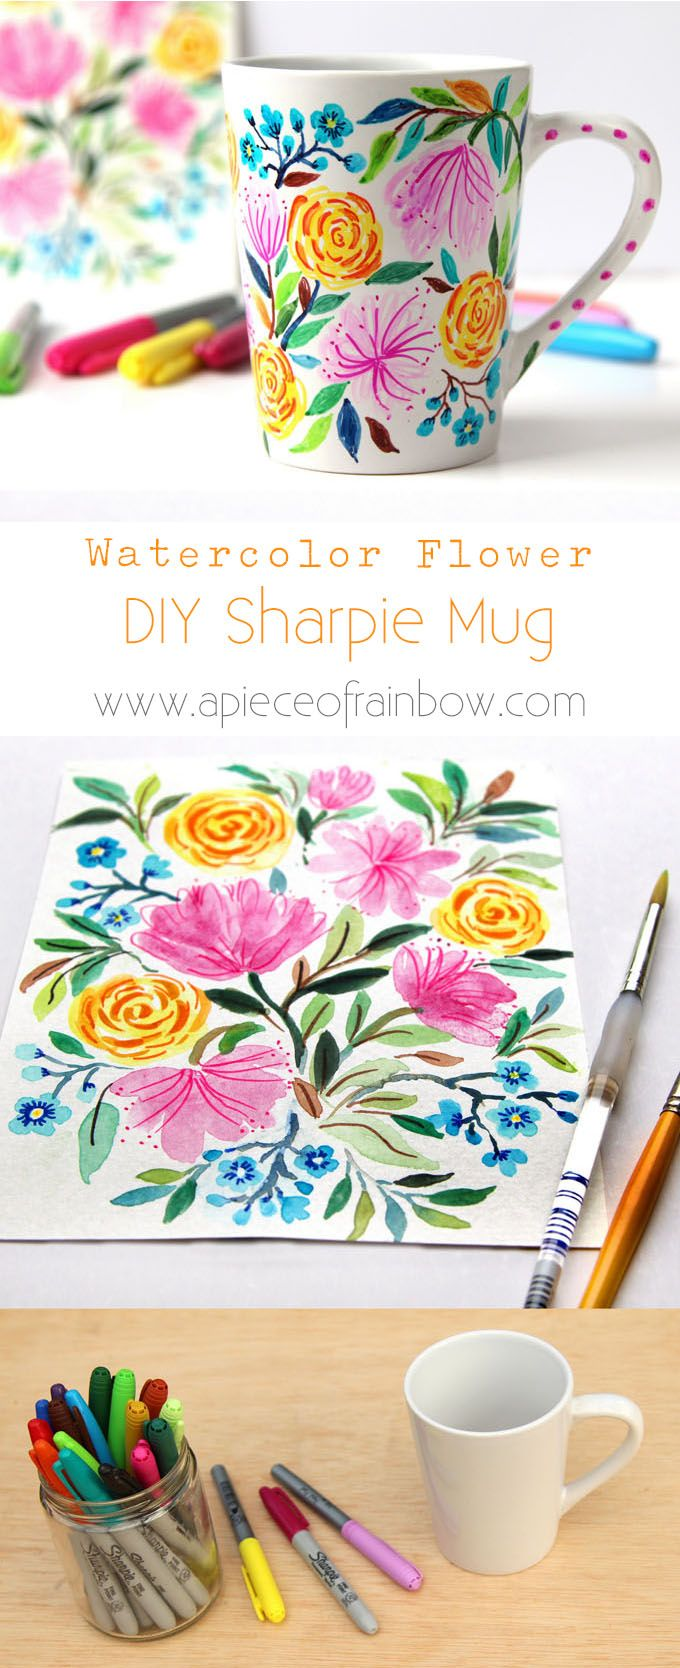 Create a beautiful watercolor flower DIY Sharpie mug that looks like hand painted Anthropologie ceramics! Video tutorial plus tips on durable finishes. - A Piece Of Rainbow http://www.apieceofrainbow.com/watercolor-flower-diy-sharpie-mug/